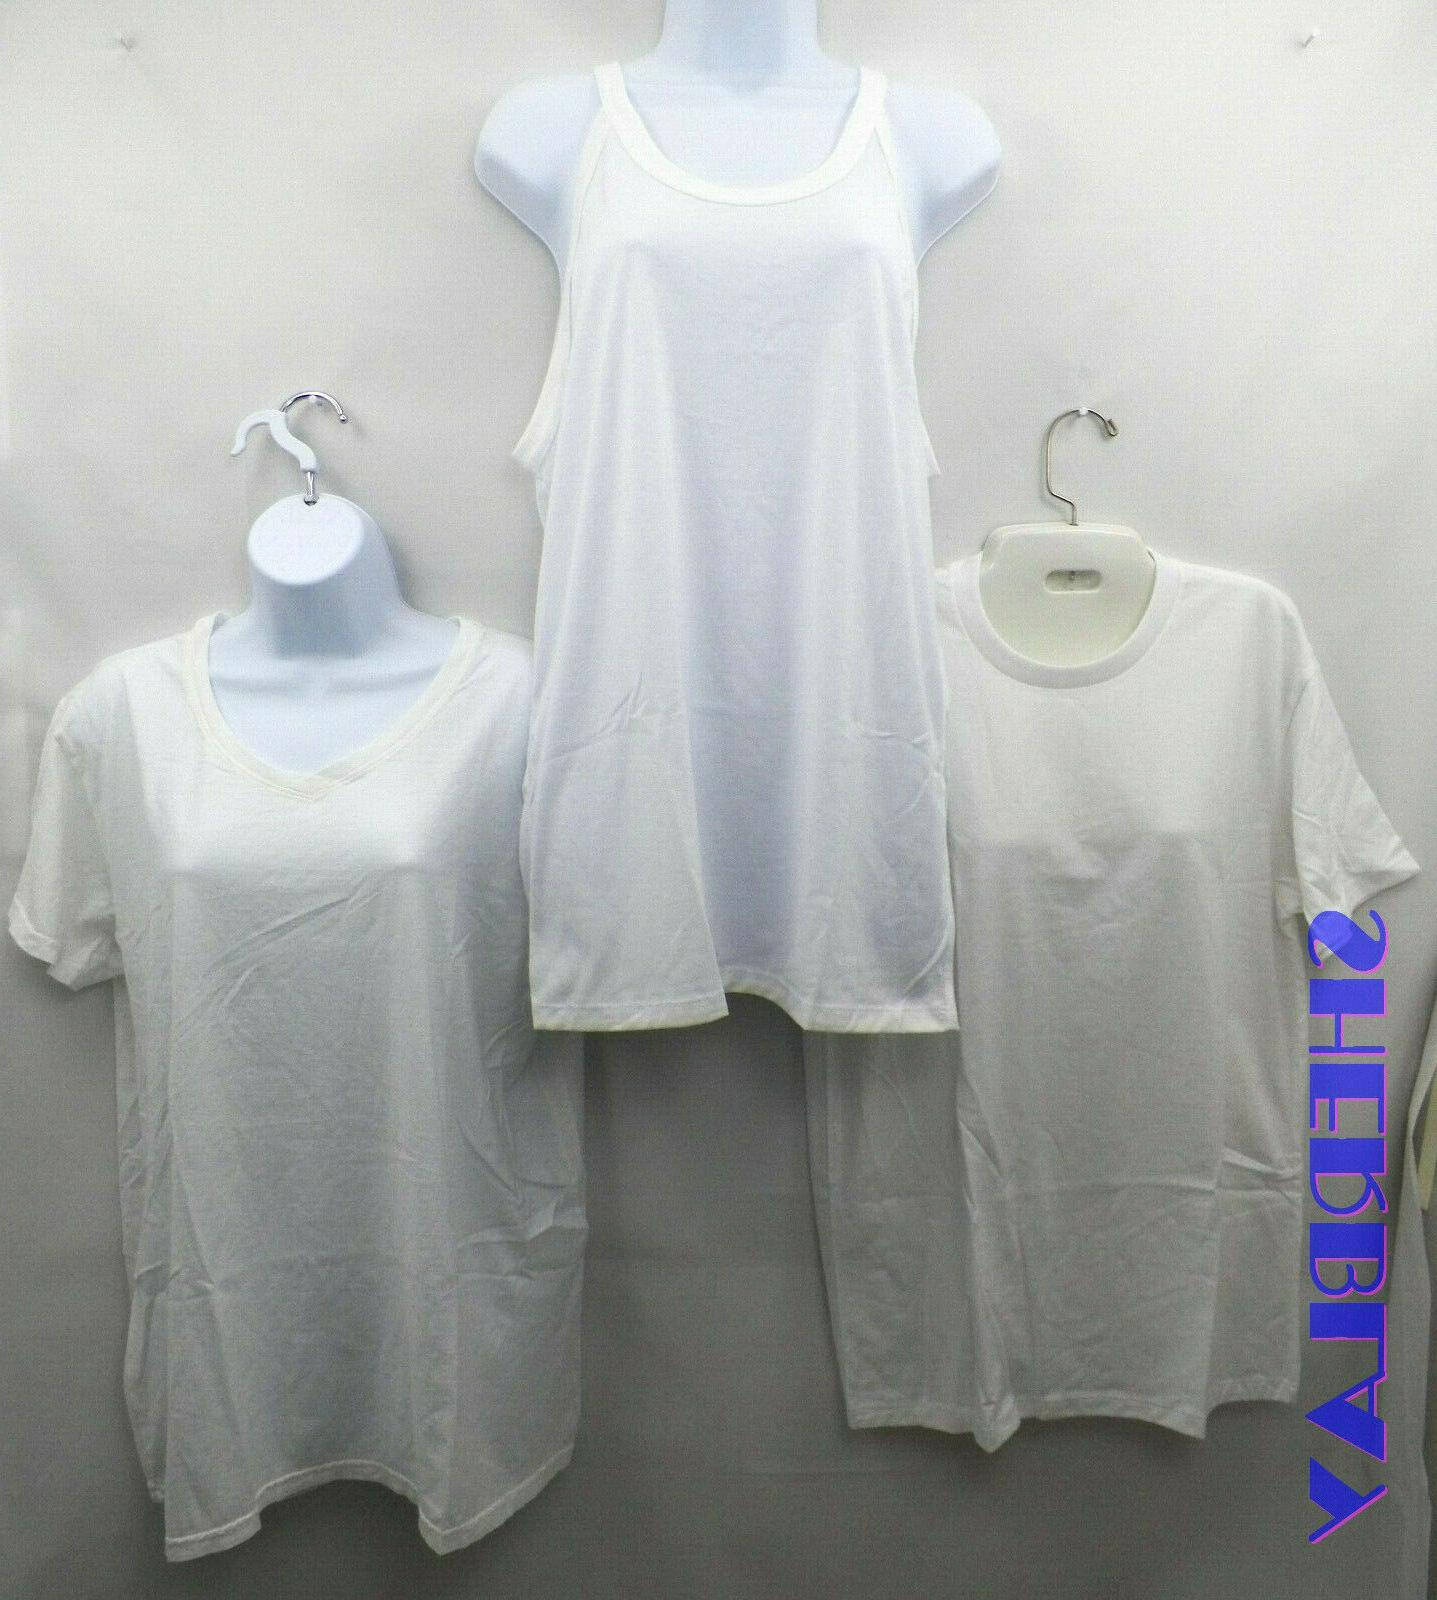 Clementine Apparel Top Tee Shirt Cotton Knit - Sleeve Options